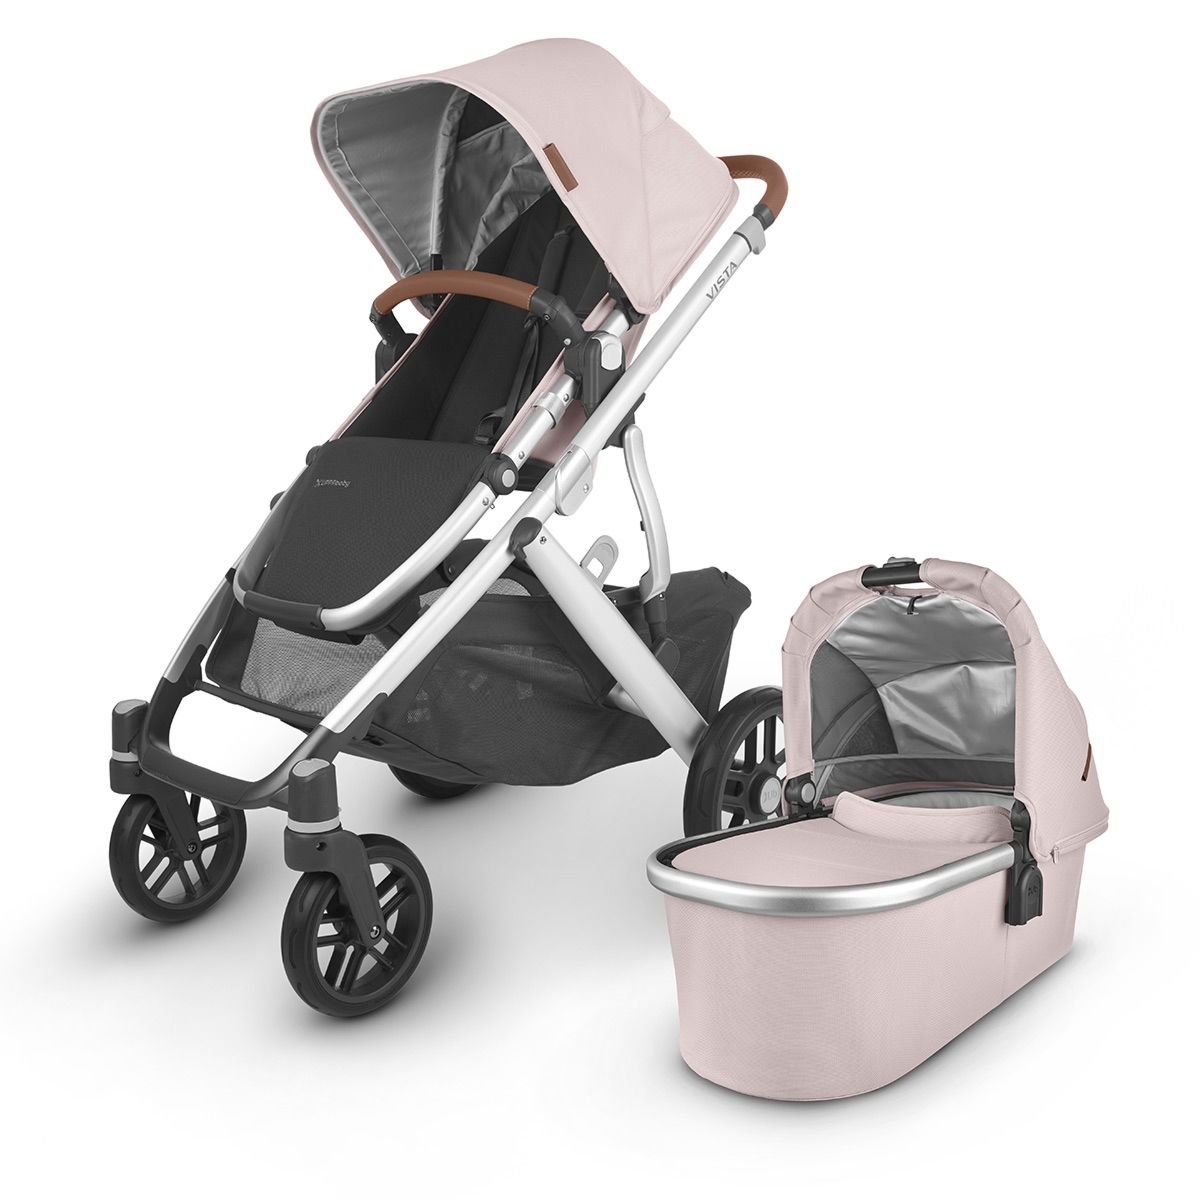 UPPABabyVISTA V2 Stroller - ALICE (Dusty Pink/Silver/Saddle Leather)